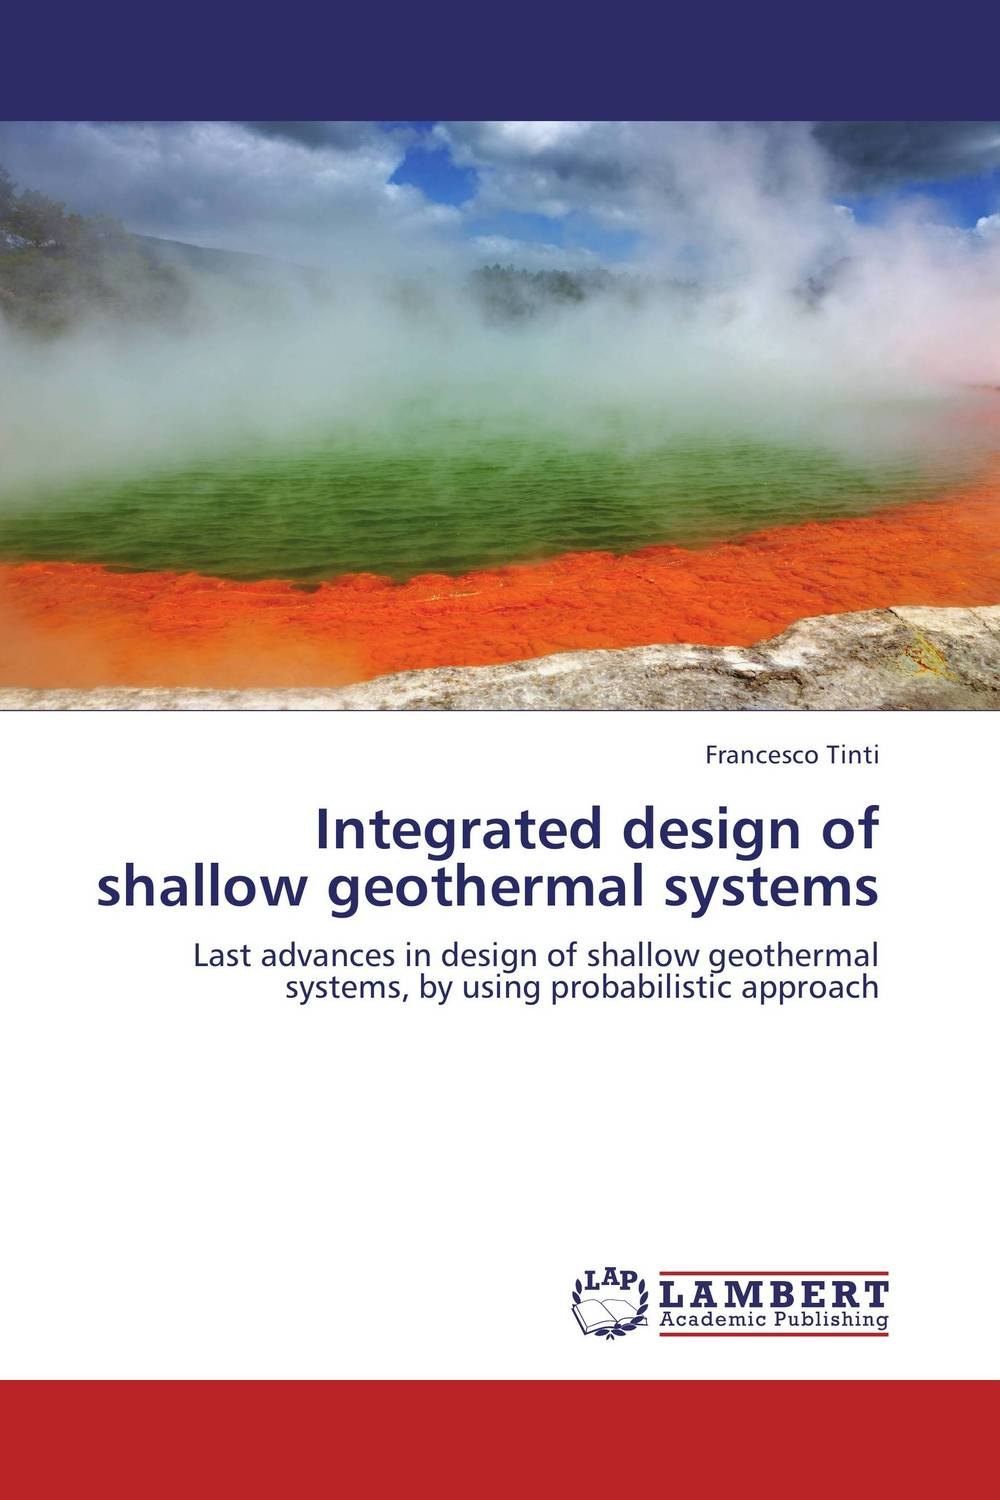 Integrated design of shallow geothermal systems tribological research and design for engineering systems